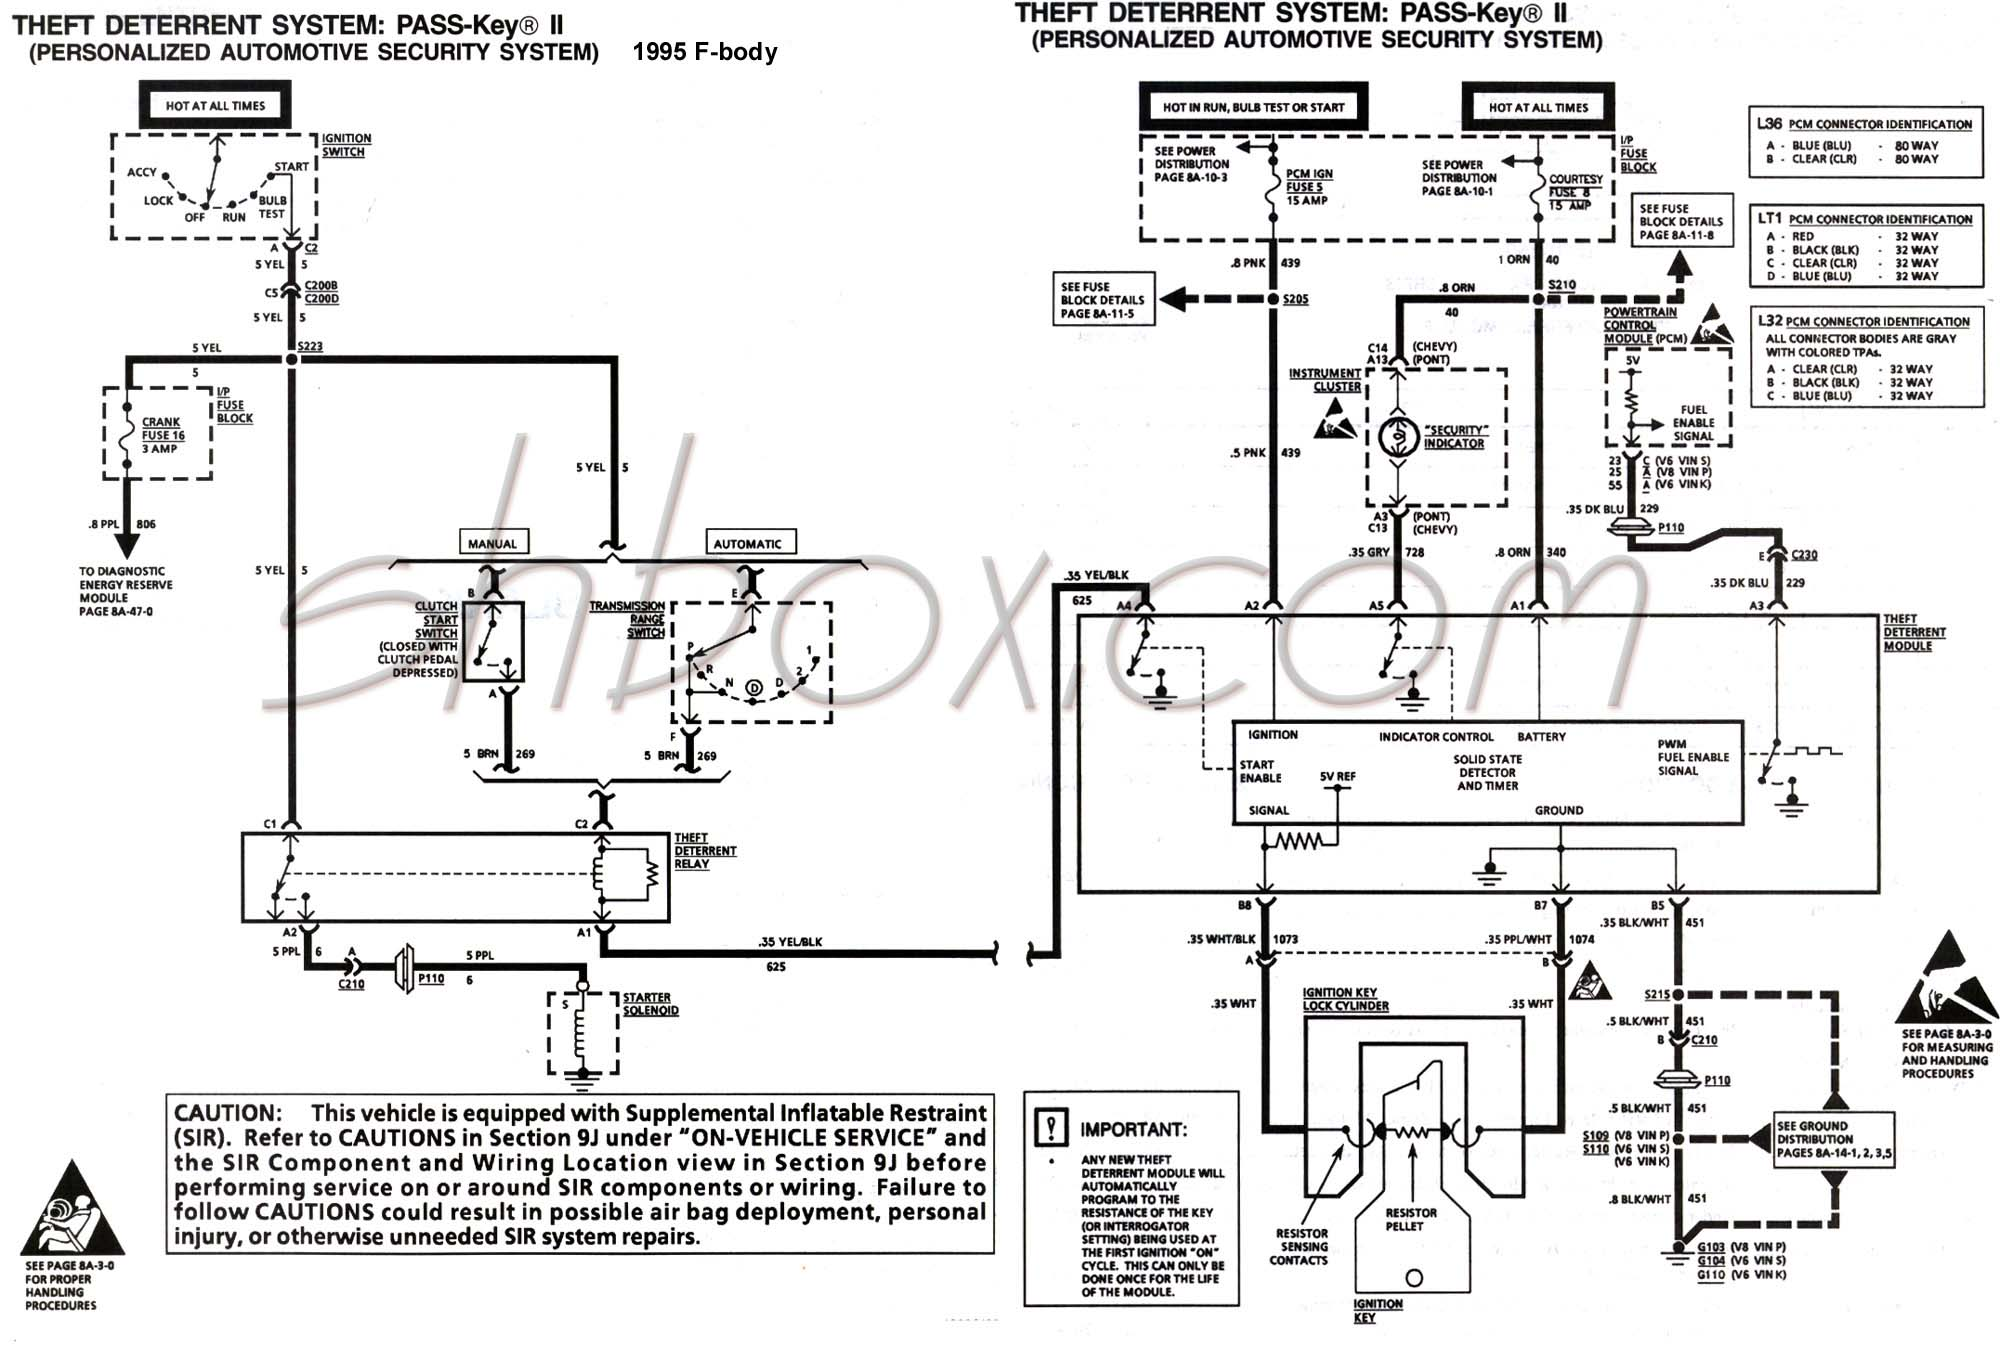 hight resolution of 4th gen lt1 f body tech aids rh shbox com chevy 350 lt1 engine diagram